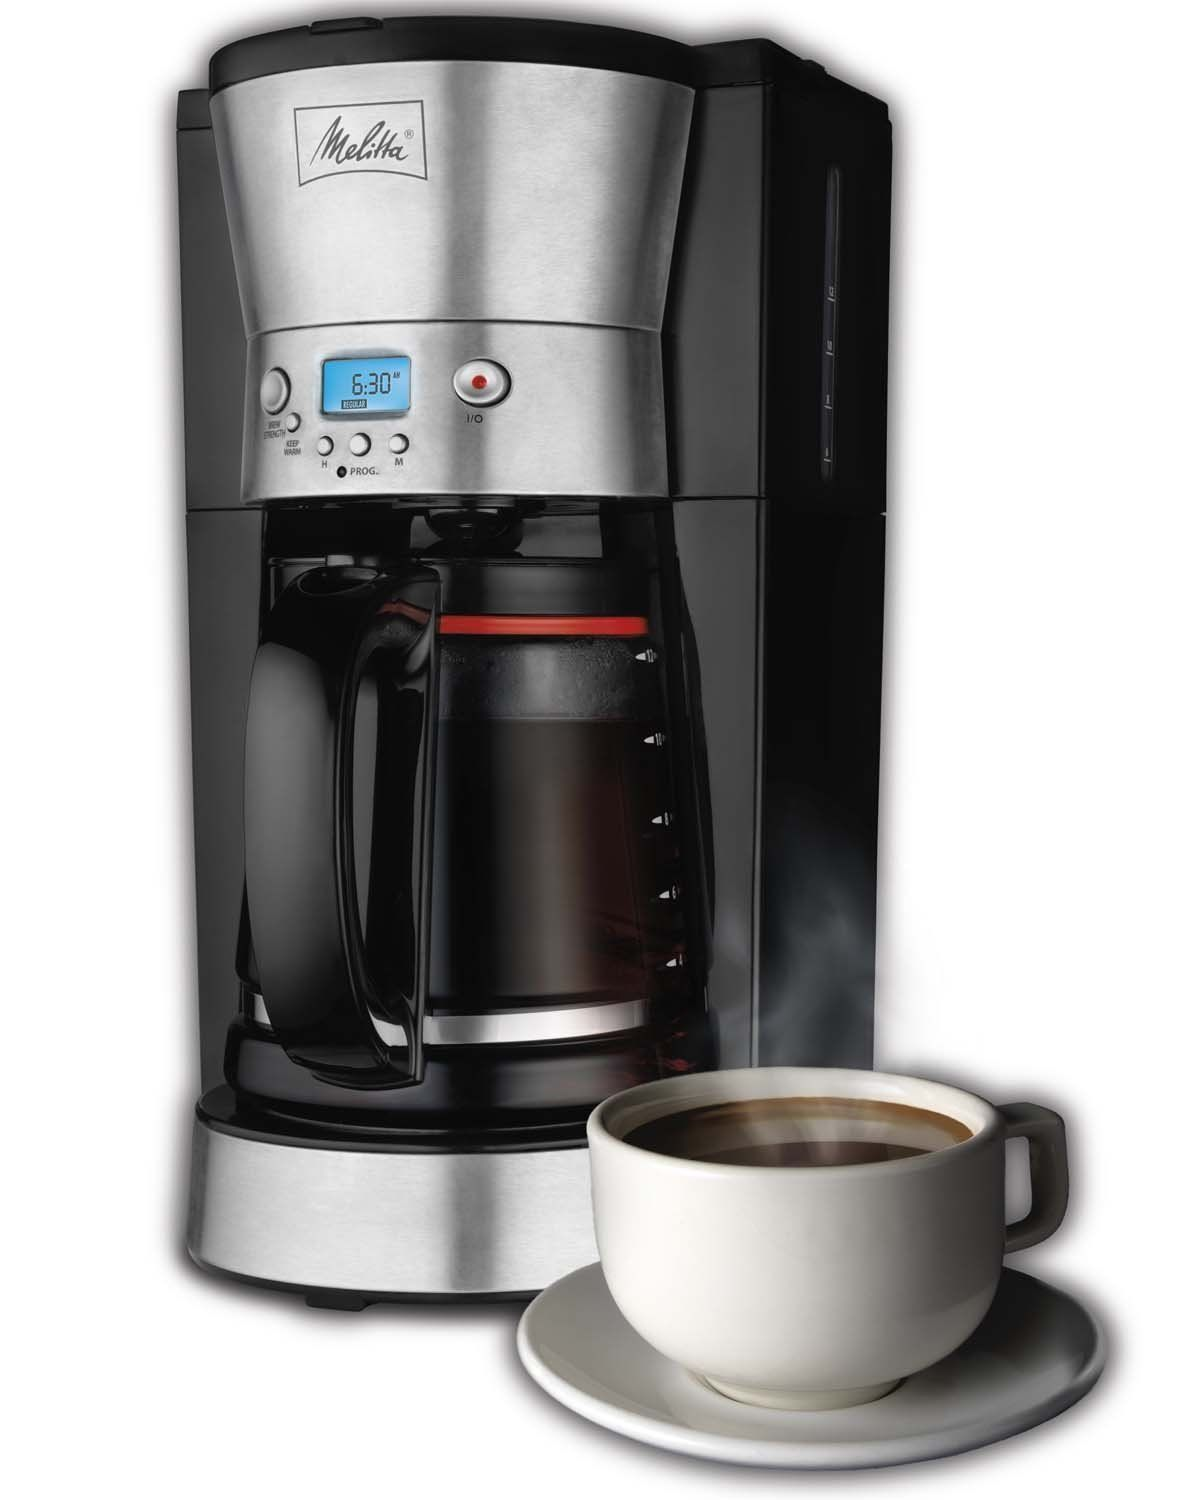 Melitta 46893 12 Cup Coffee Maker Best Drip Coffee Maker Thermal Coffee Maker Best Coffee Maker